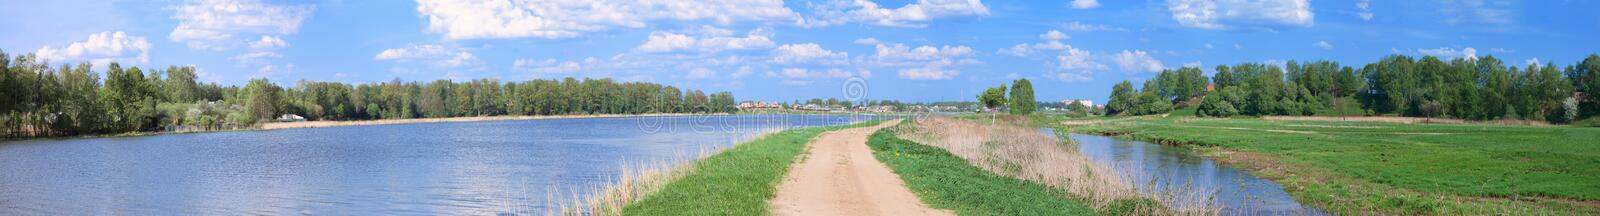 Road on a river coast royalty free stock photos